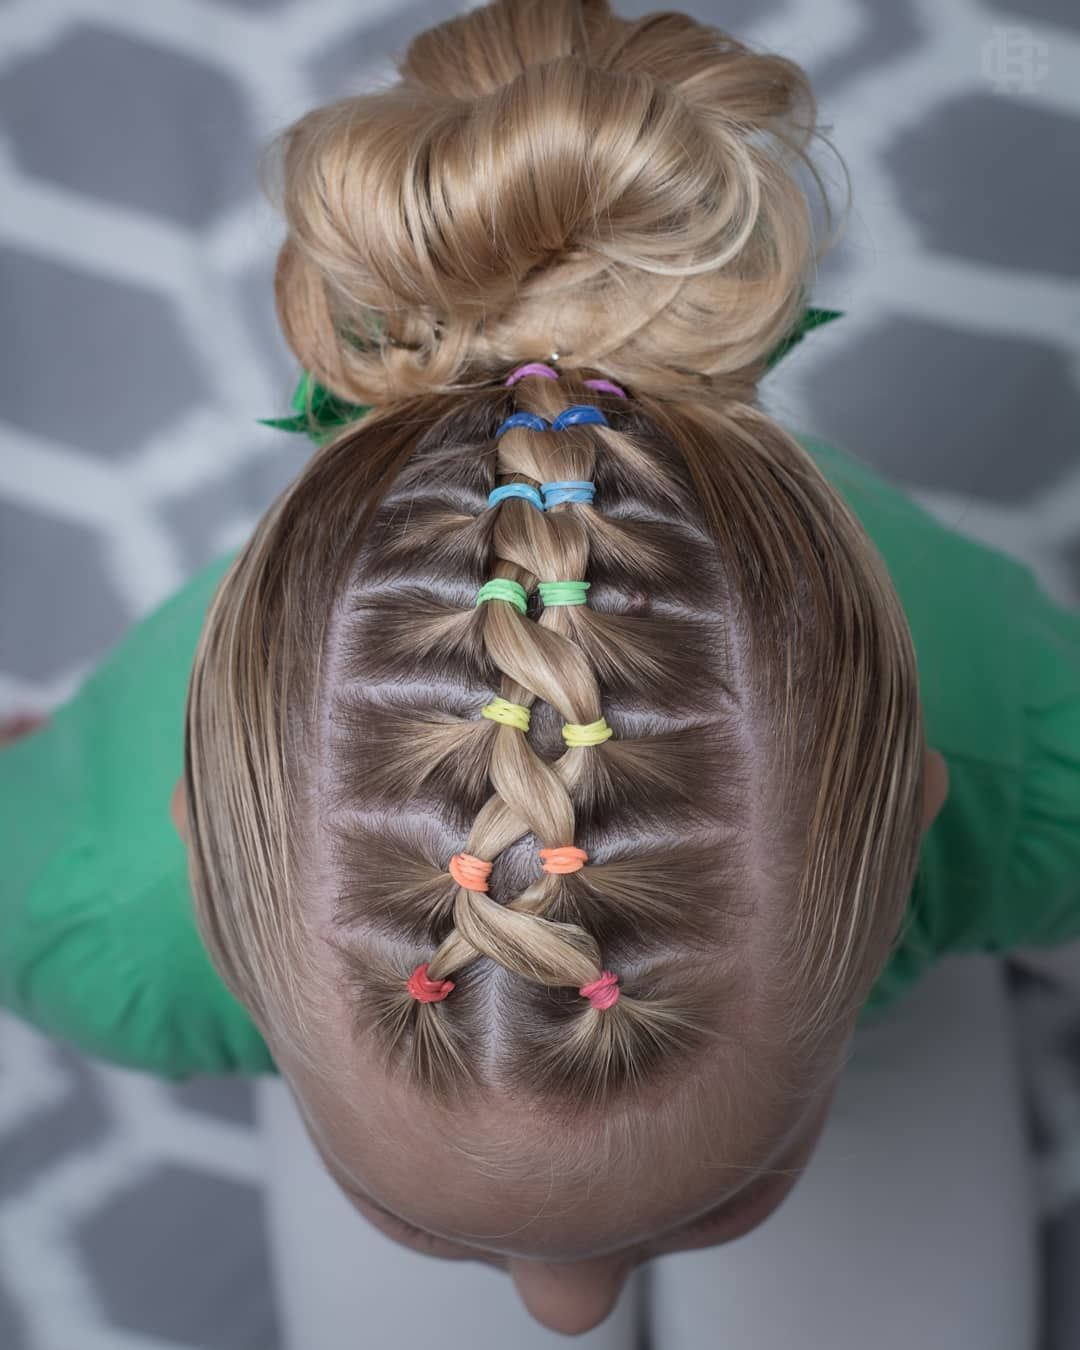 160 Braids Hairstyle Ideas For Little Kids Hair Styles Girls Hairdos Braided Hairstyles